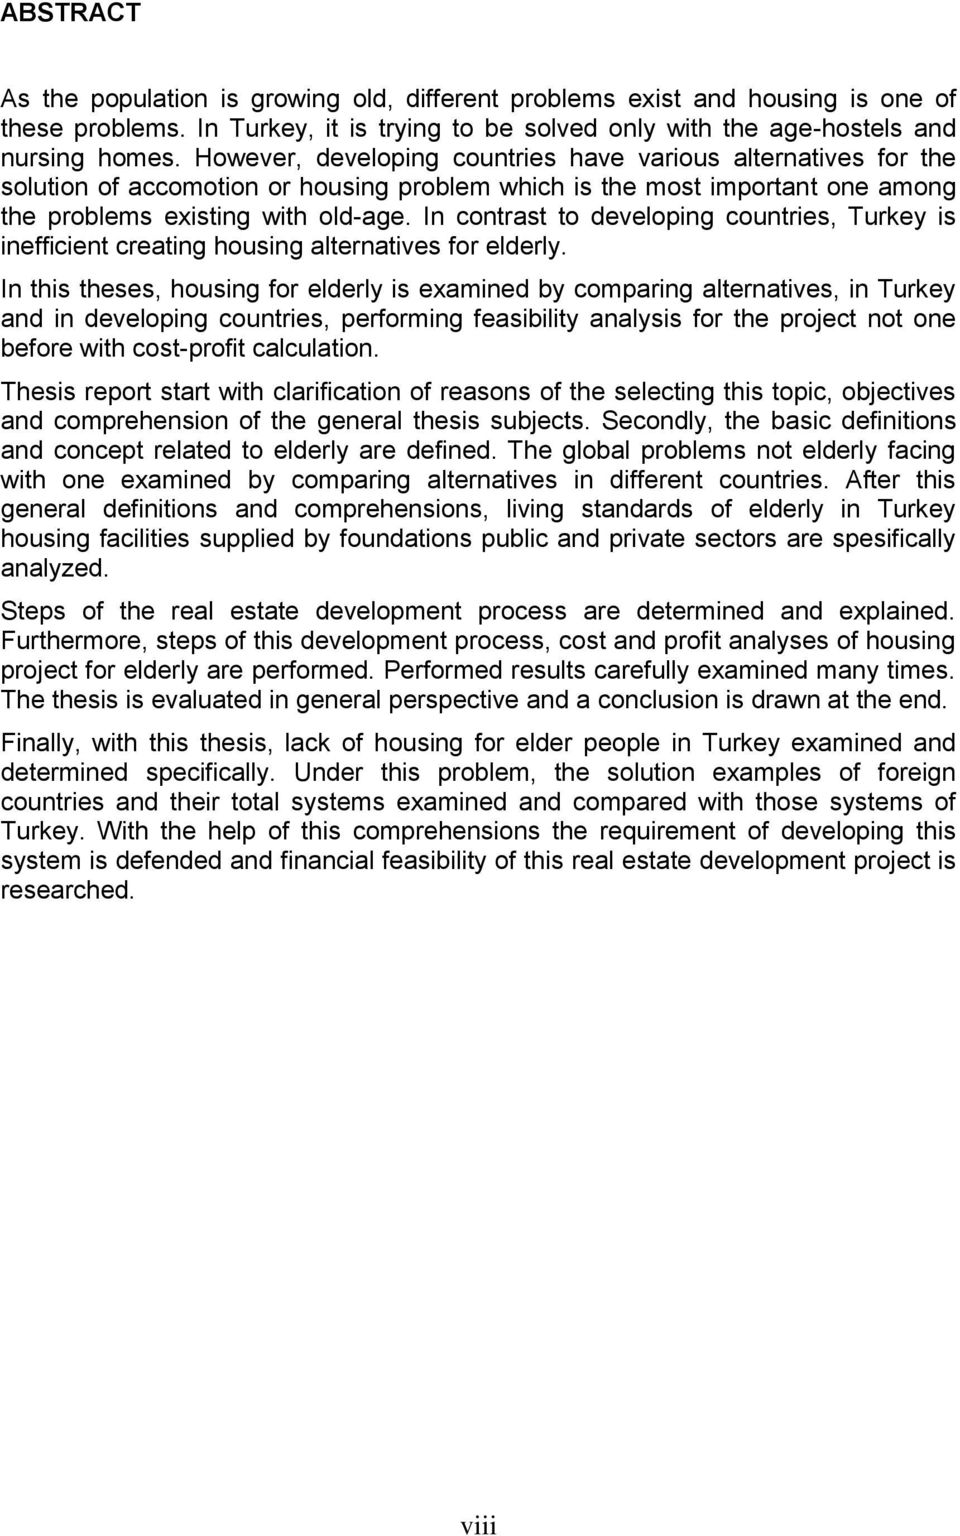 In contrast to developing countries, Turkey is inefficient creating housing alternatives for elderly.